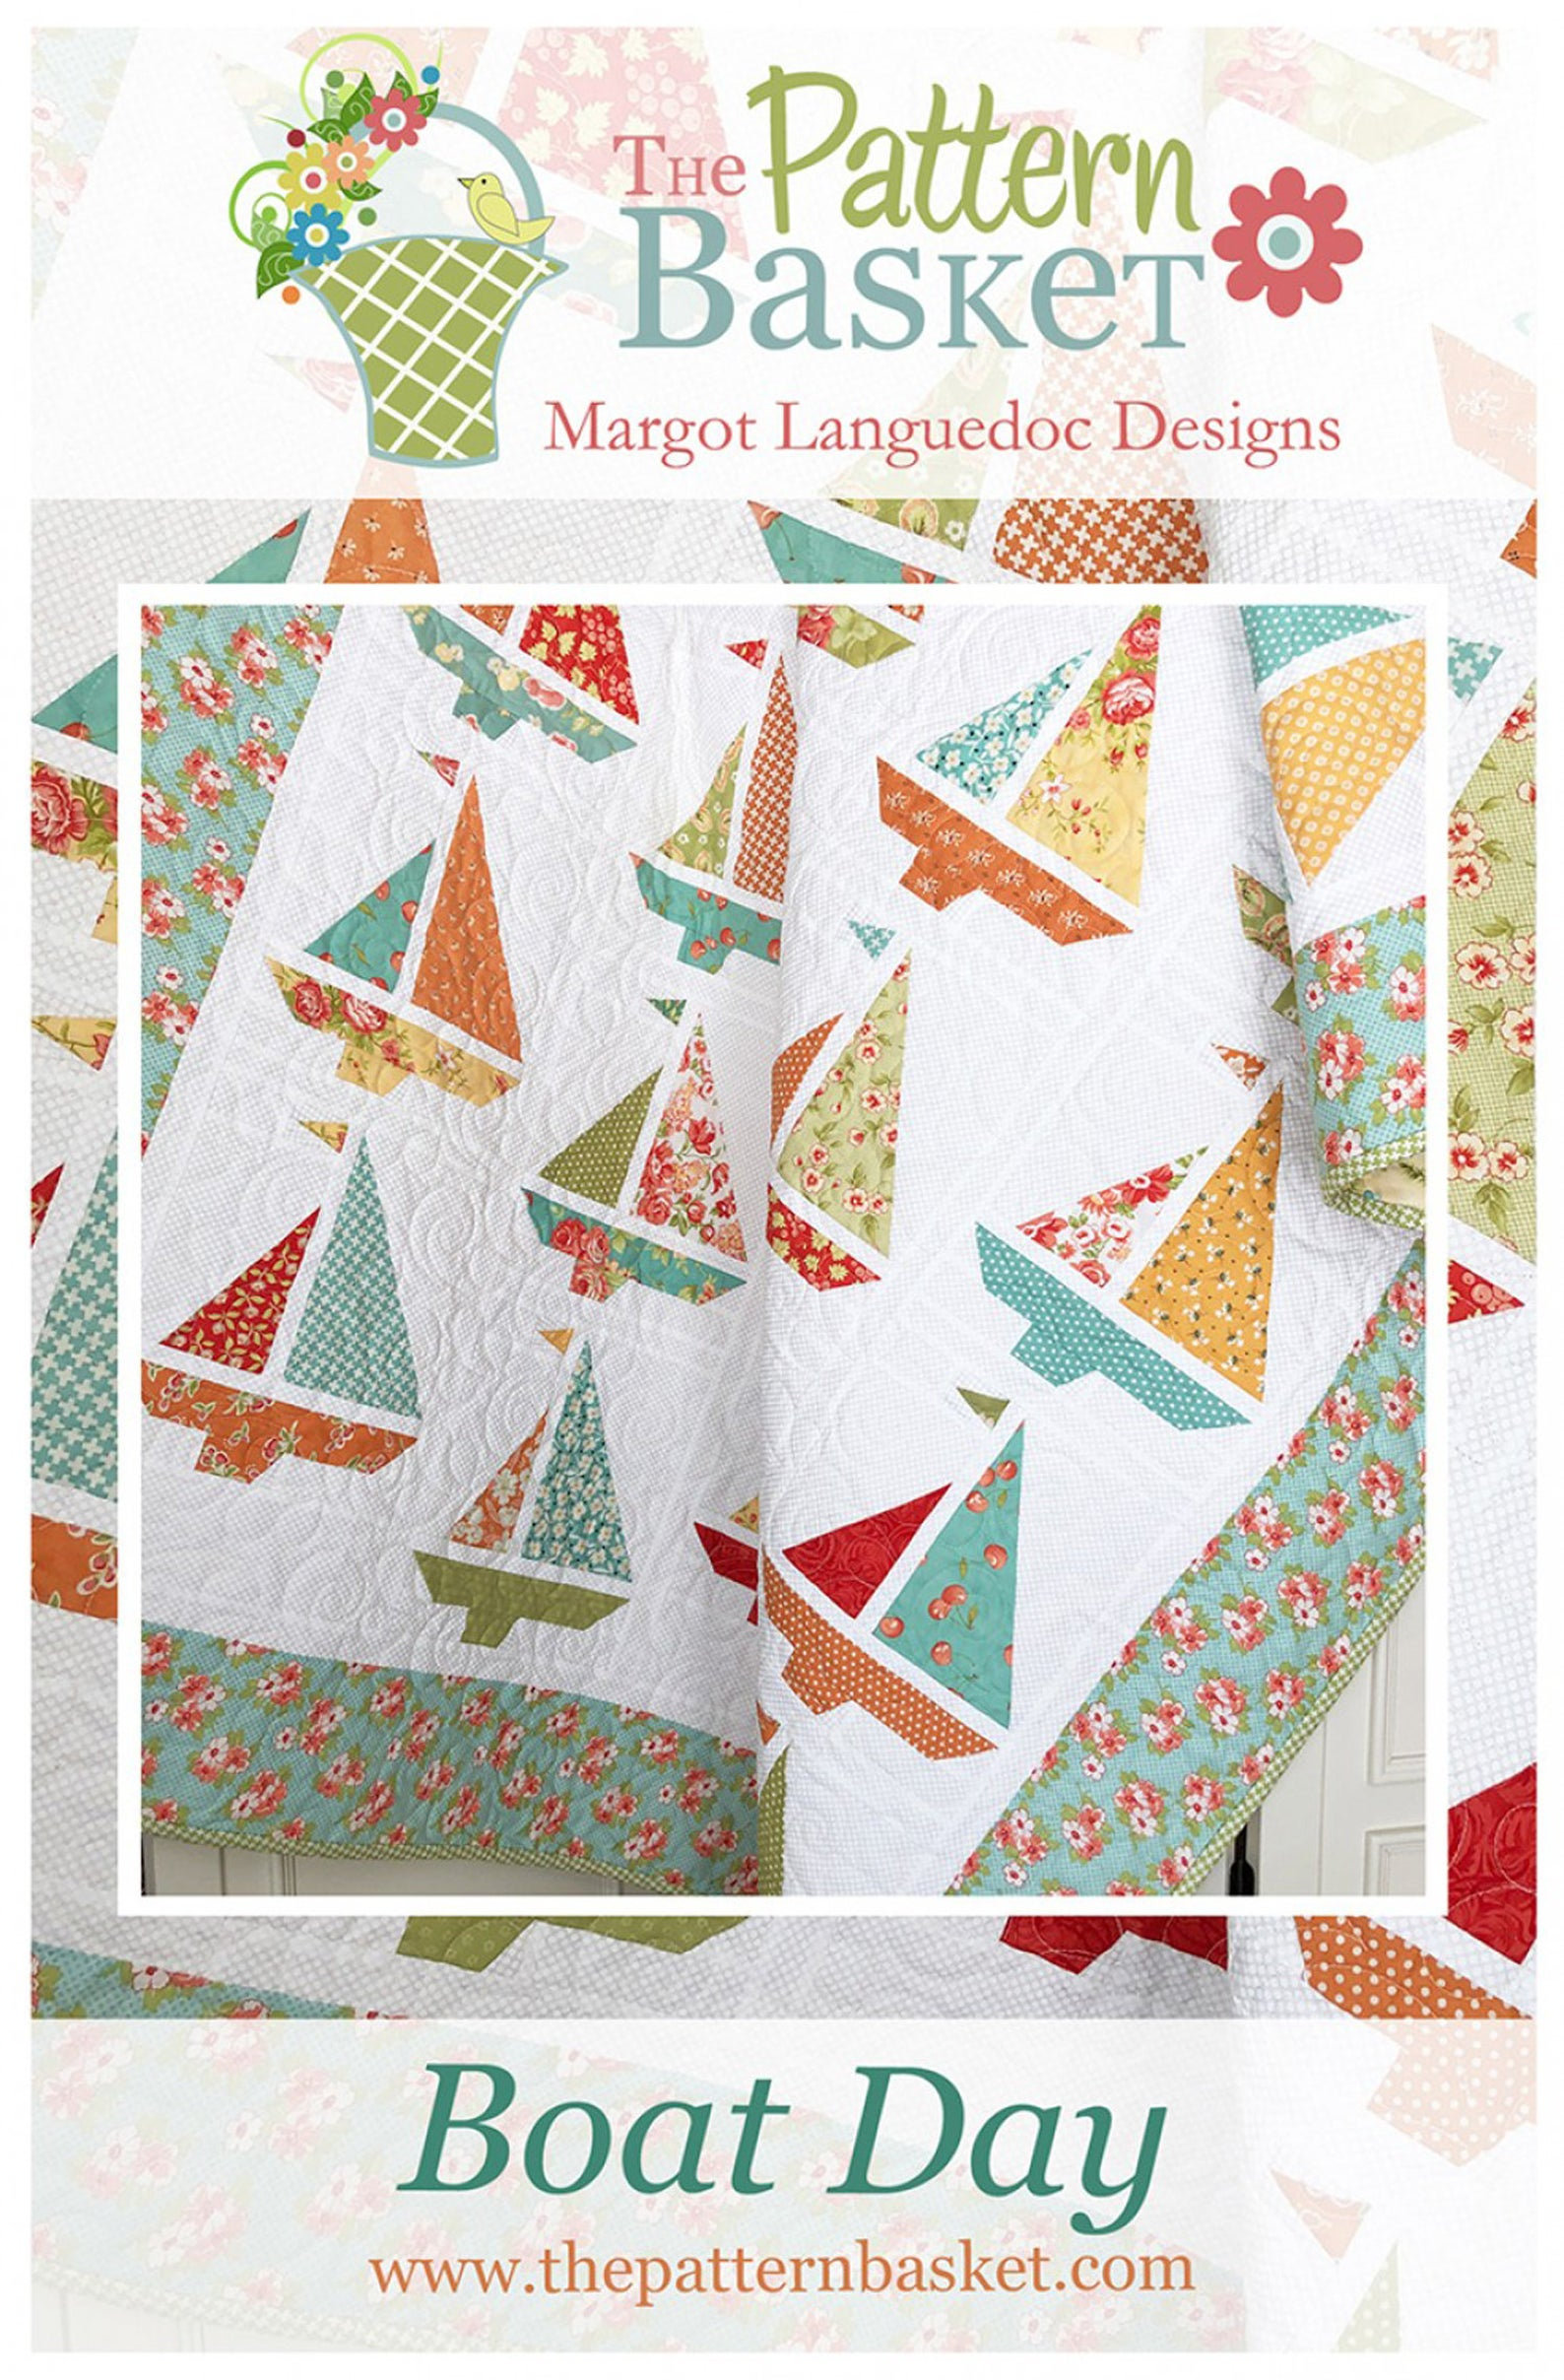 Boat Day Quilt Pattern by The Pattern Basket Margot Languedoc